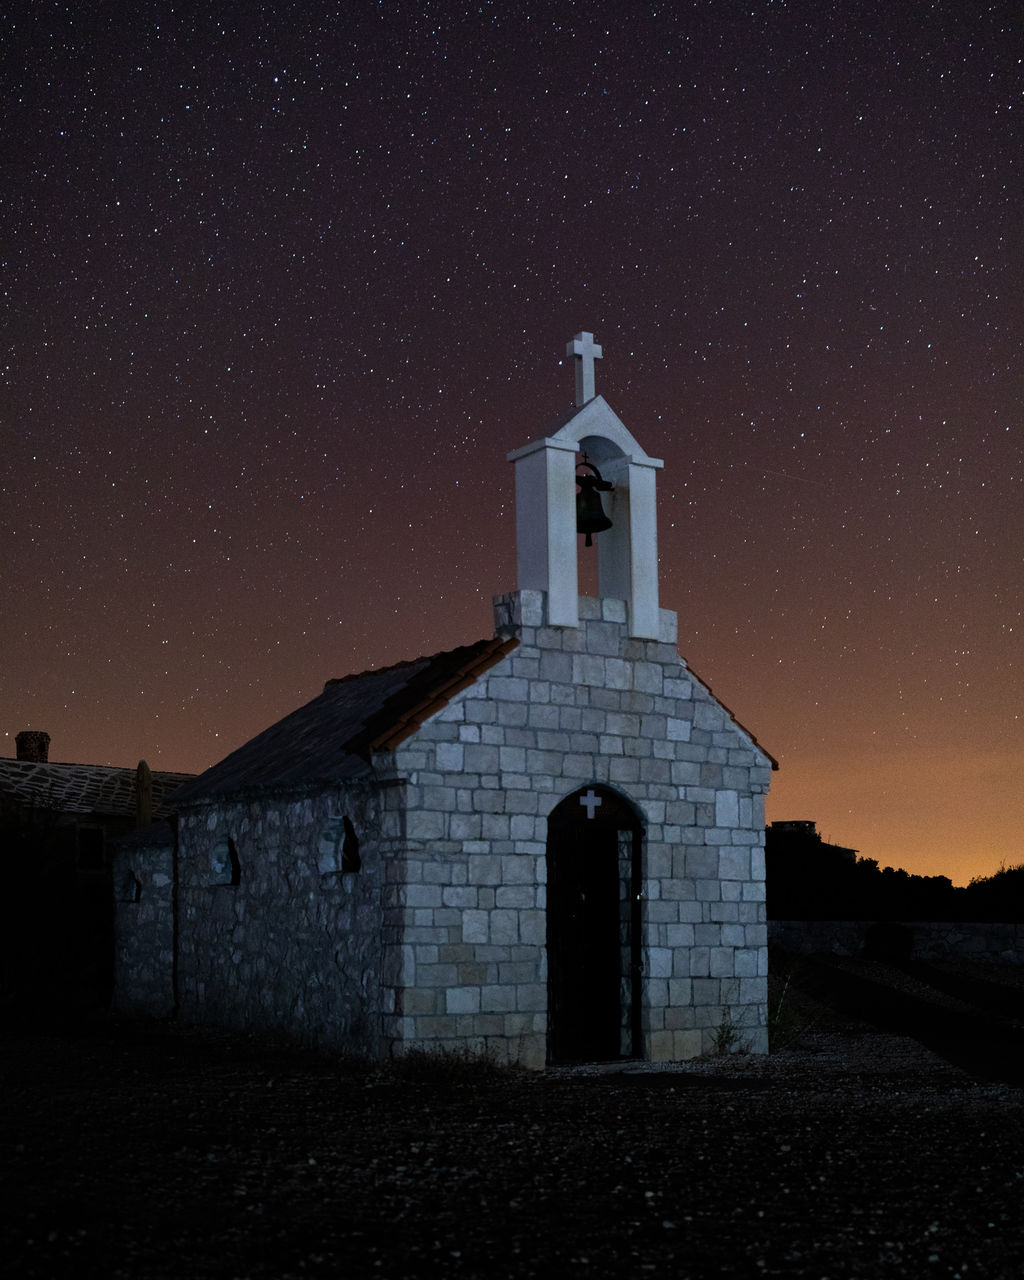 built structure, night, star - space, architecture, sky, building exterior, astronomy, religion, belief, place of worship, spirituality, building, star, star field, space, nature, galaxy, no people, space and astronomy